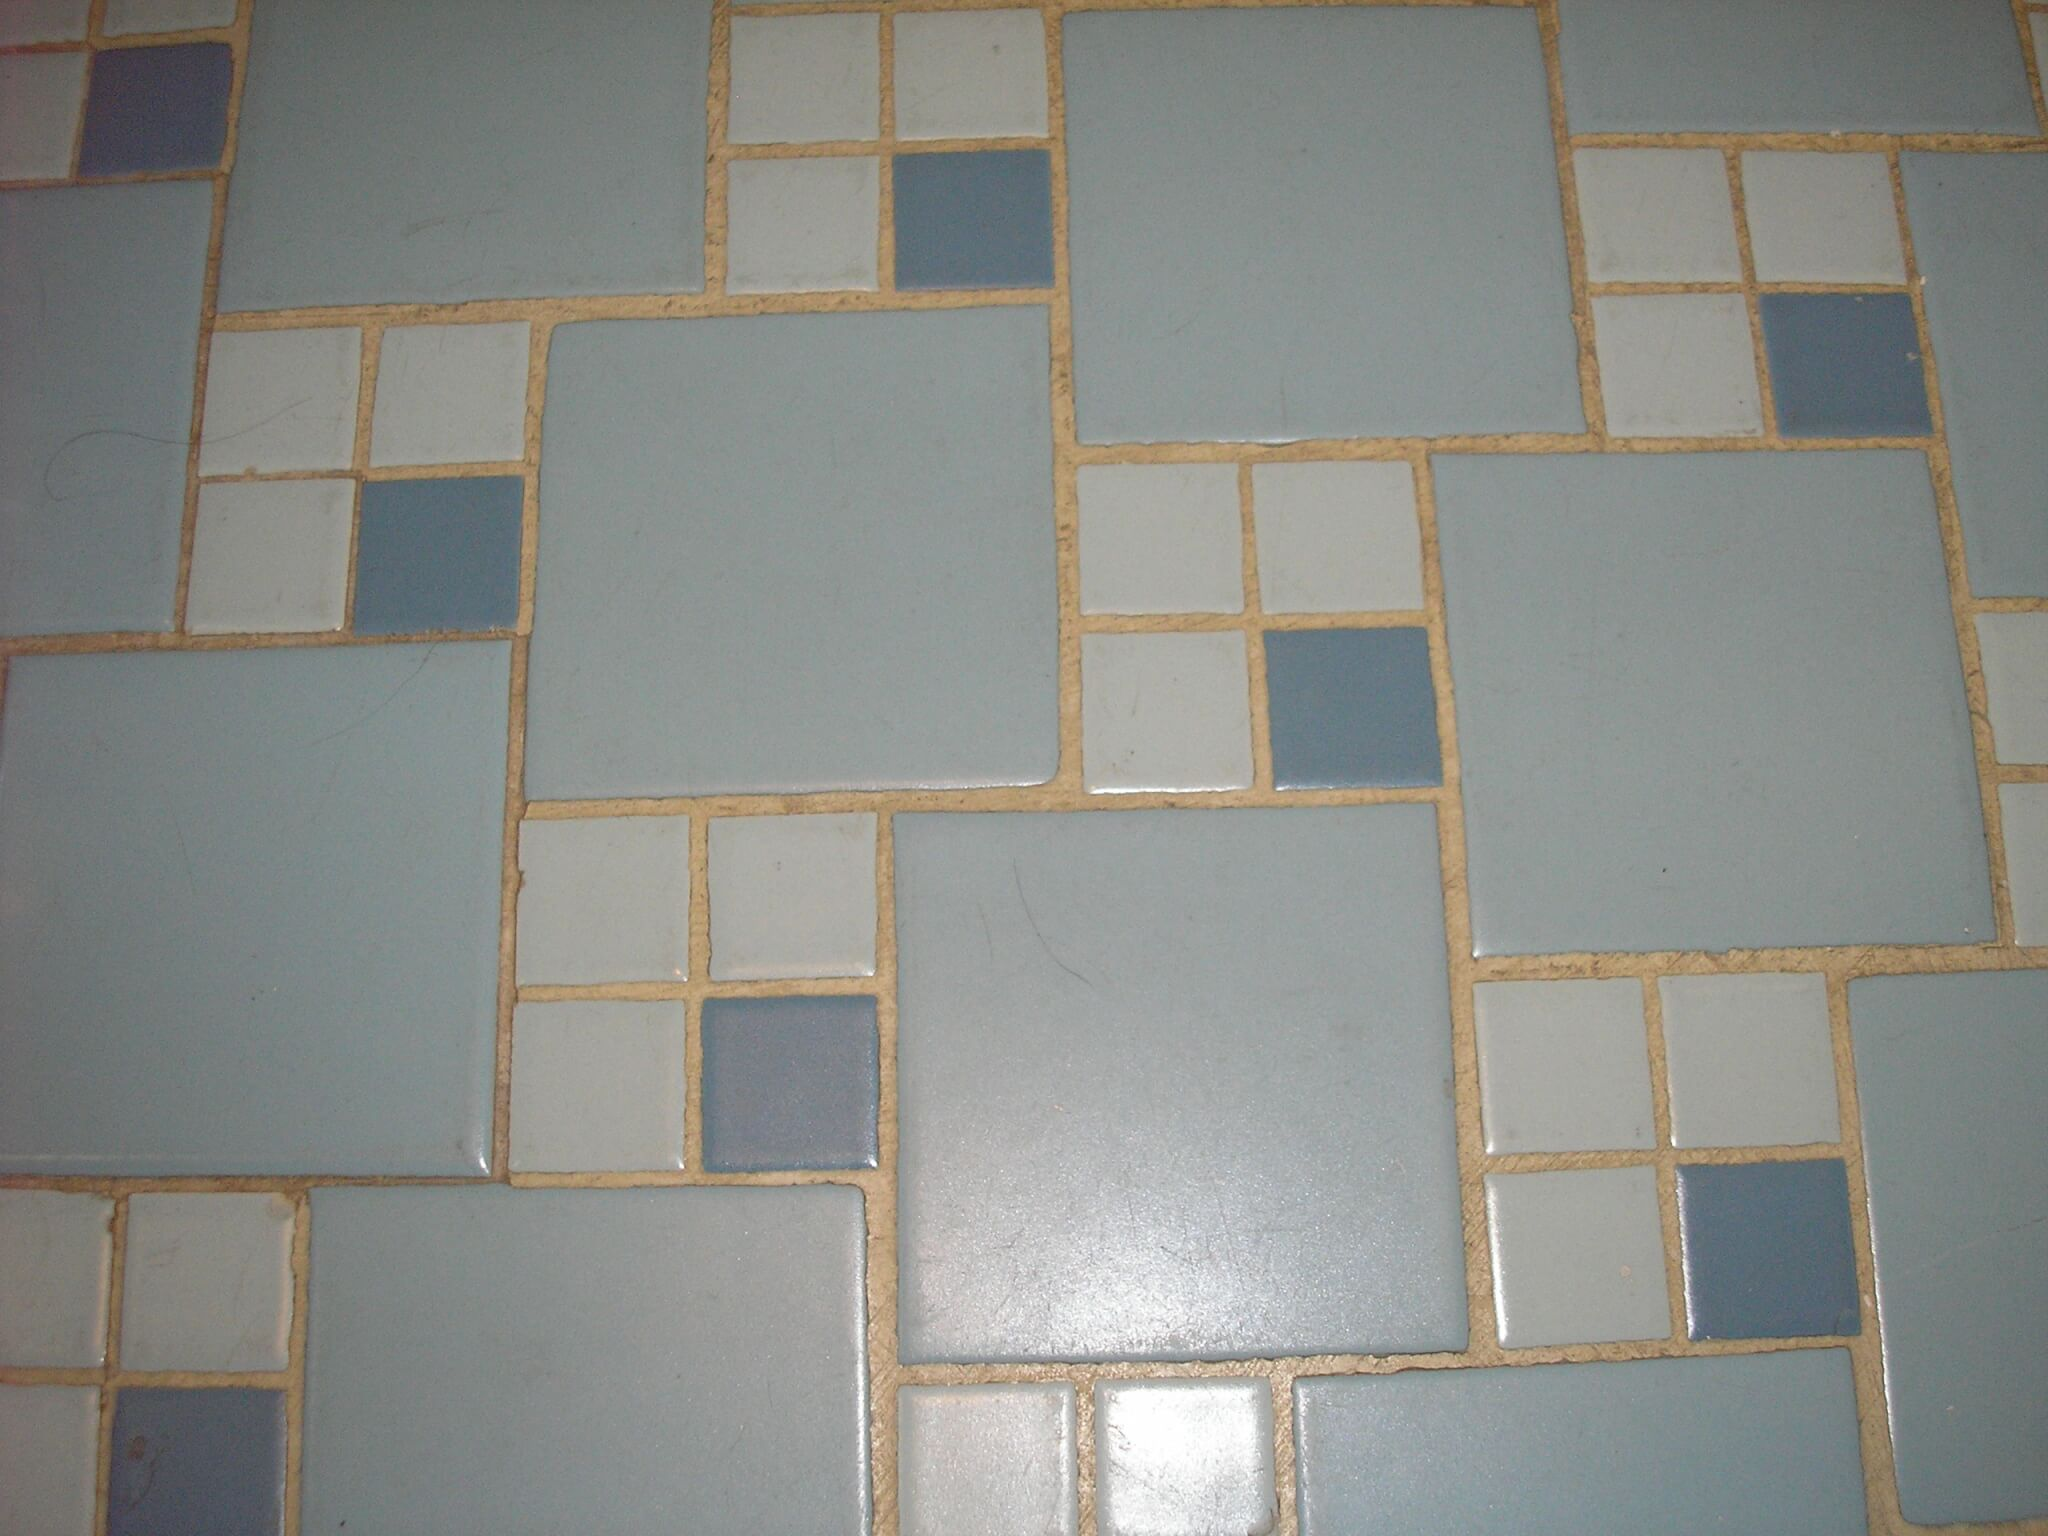 Replicating Alices Blue 50s Bathroom Tile Floor Retro Renovation